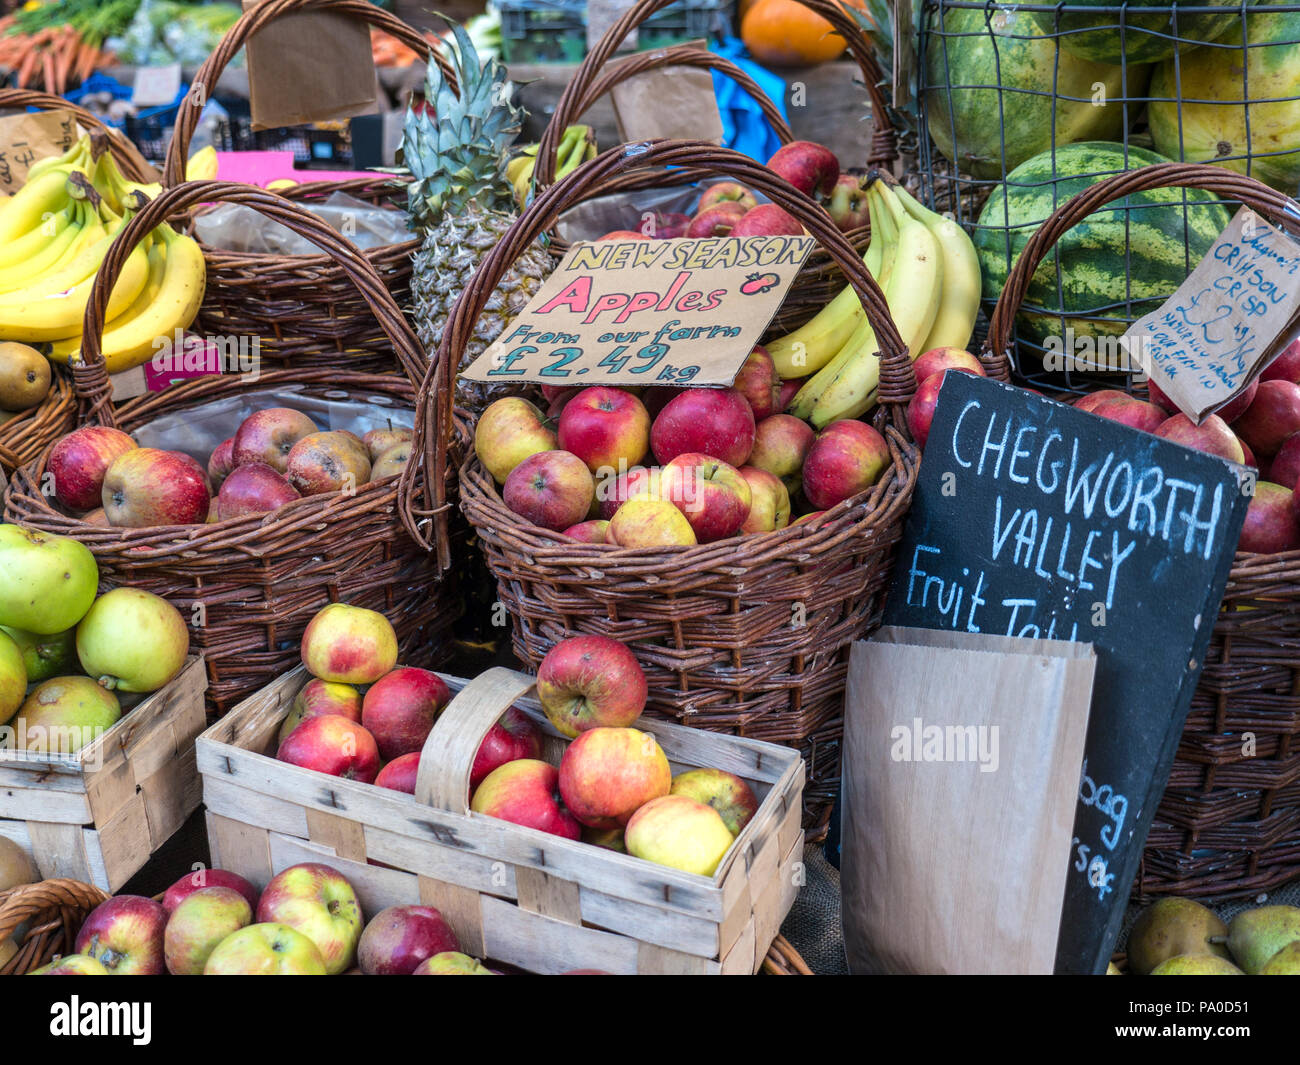 Borough Market English Apples fruit stall Chegworth Valley family run fruit farm hand selected new season fruit Southwark London UK - Stock Image